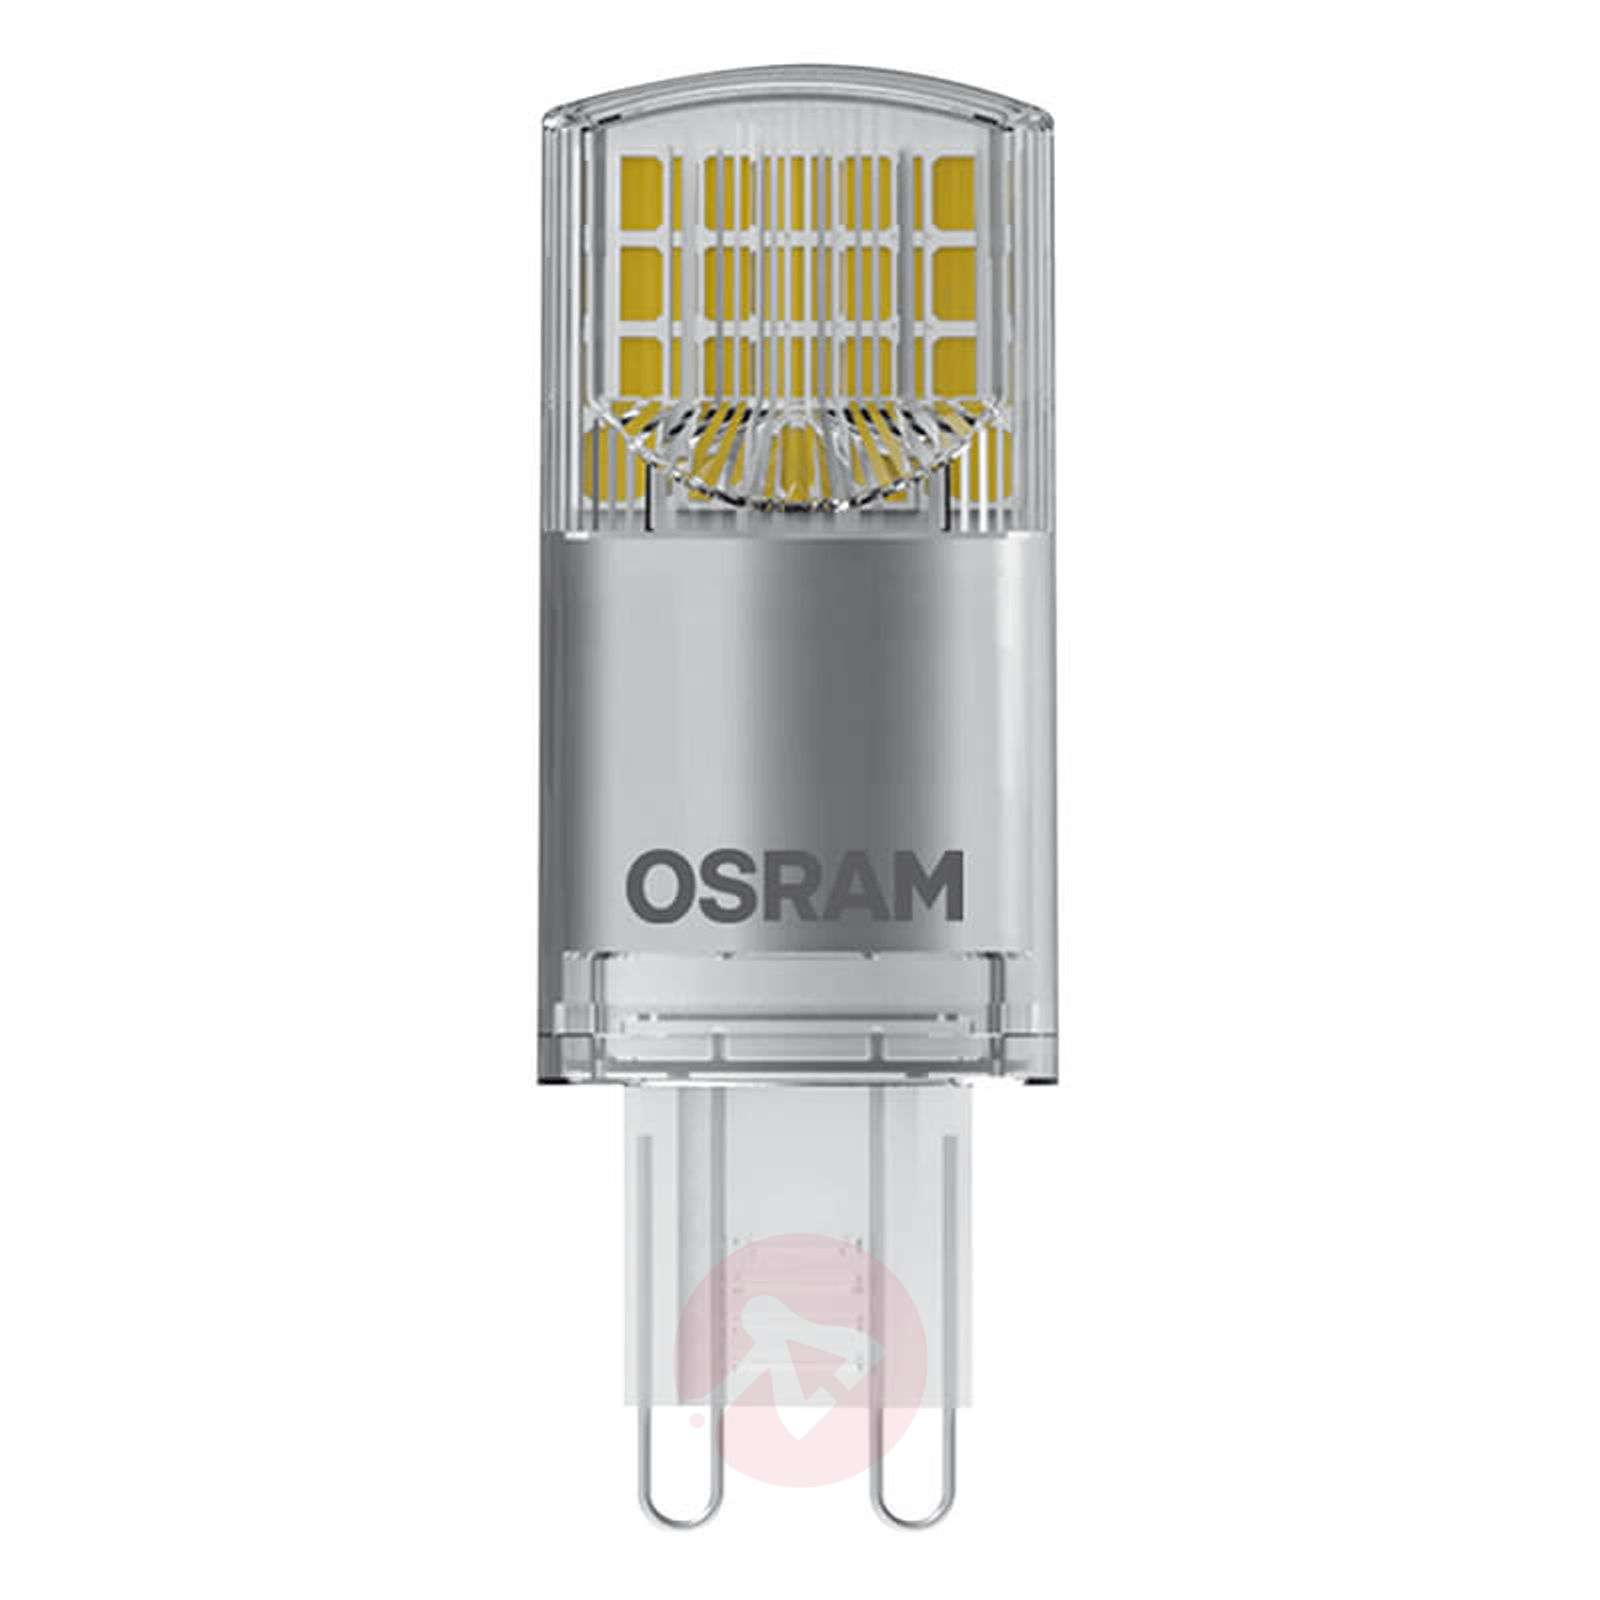 Ampoule broches LED G9 3,5W, blanc chaud, dimmable-7262067-01